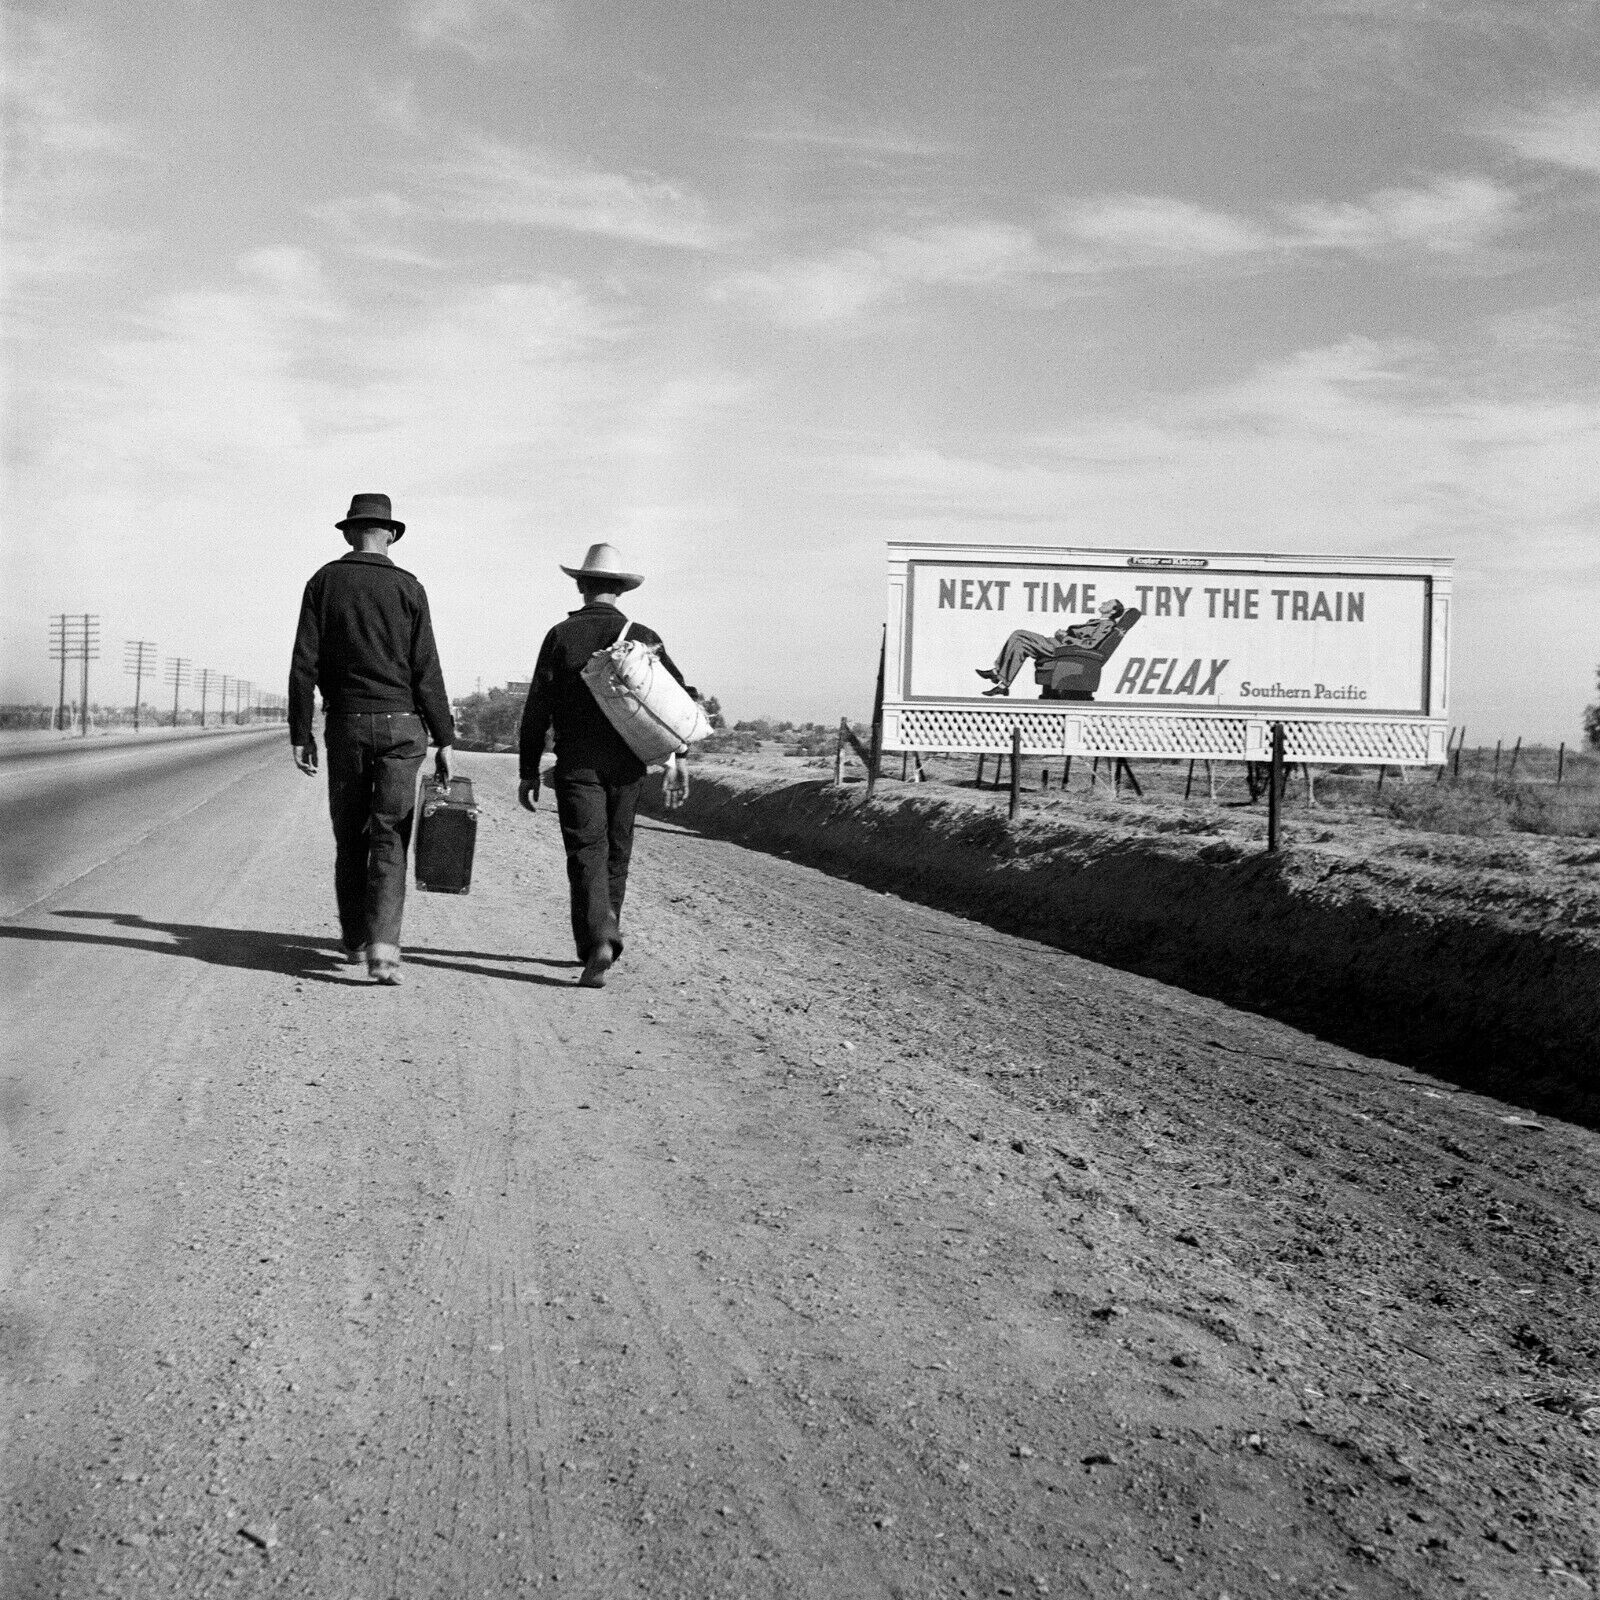 Toward Los Angeles 1937 Hitchhikers SPRR Billboard Lange Vintage Photo Reprint  - $16.00